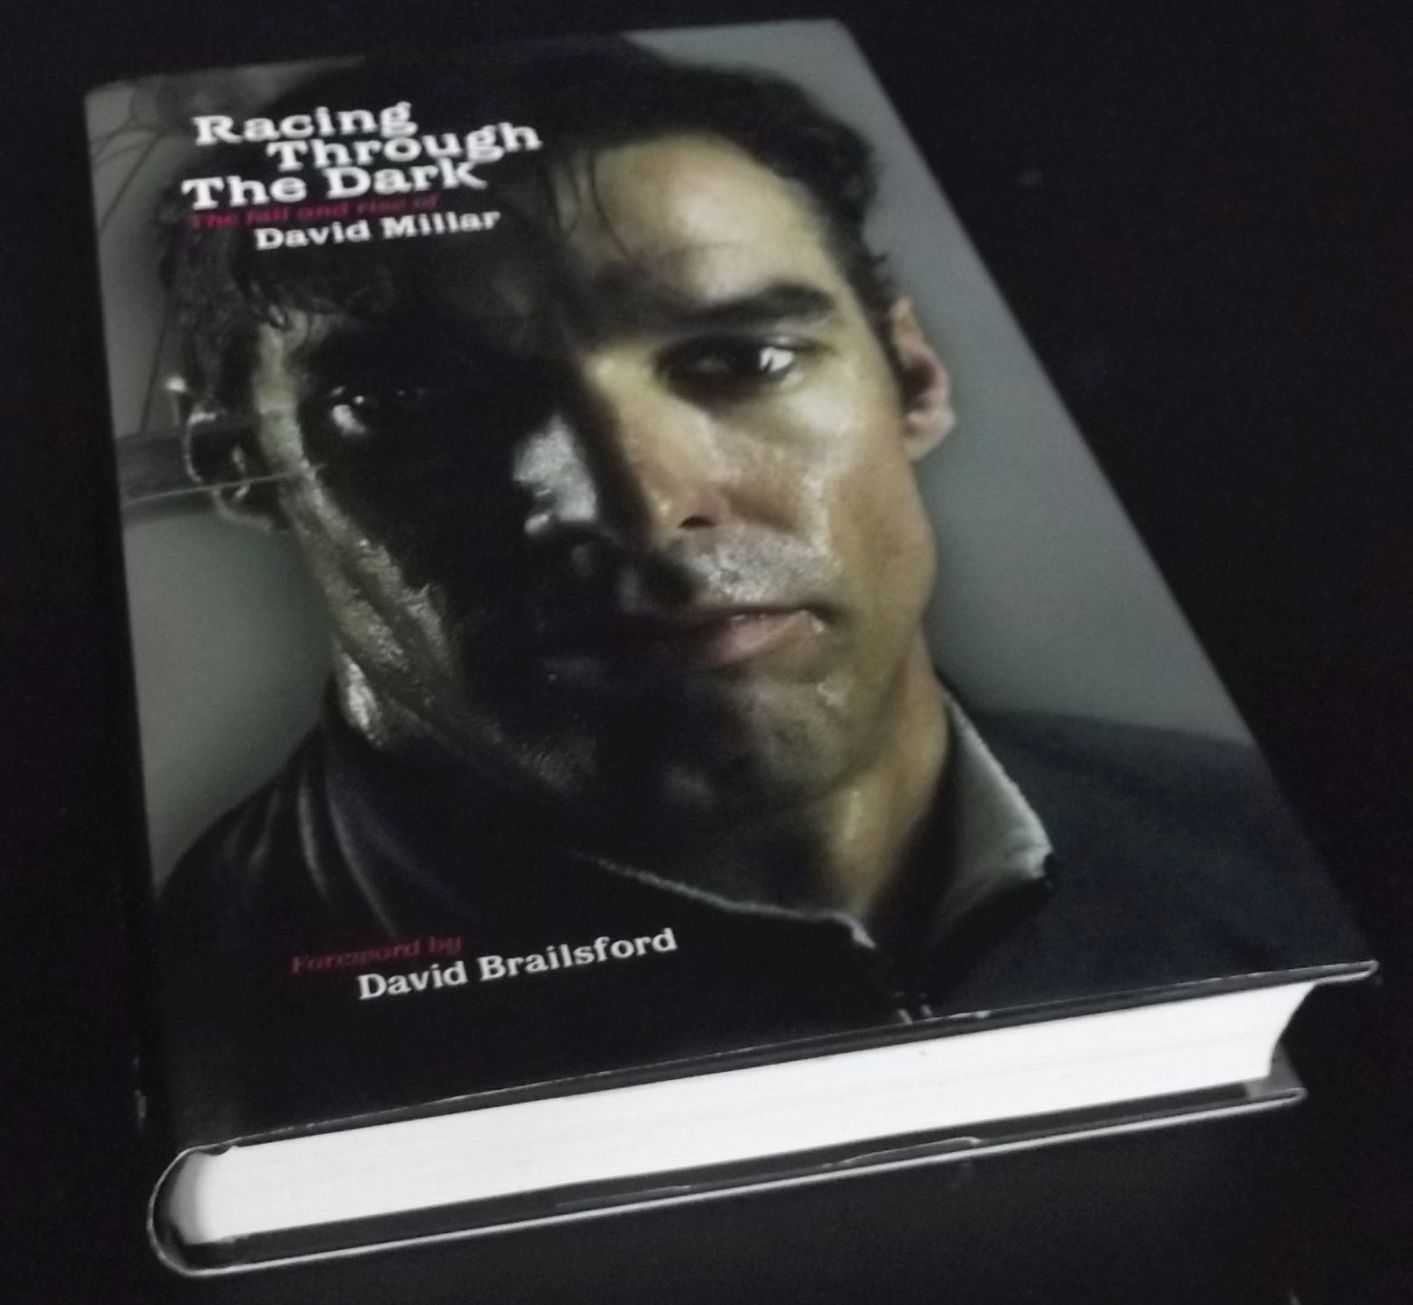 DAVID MILLAR - Racing Through the Dark: The Fall and Rise of David Millar